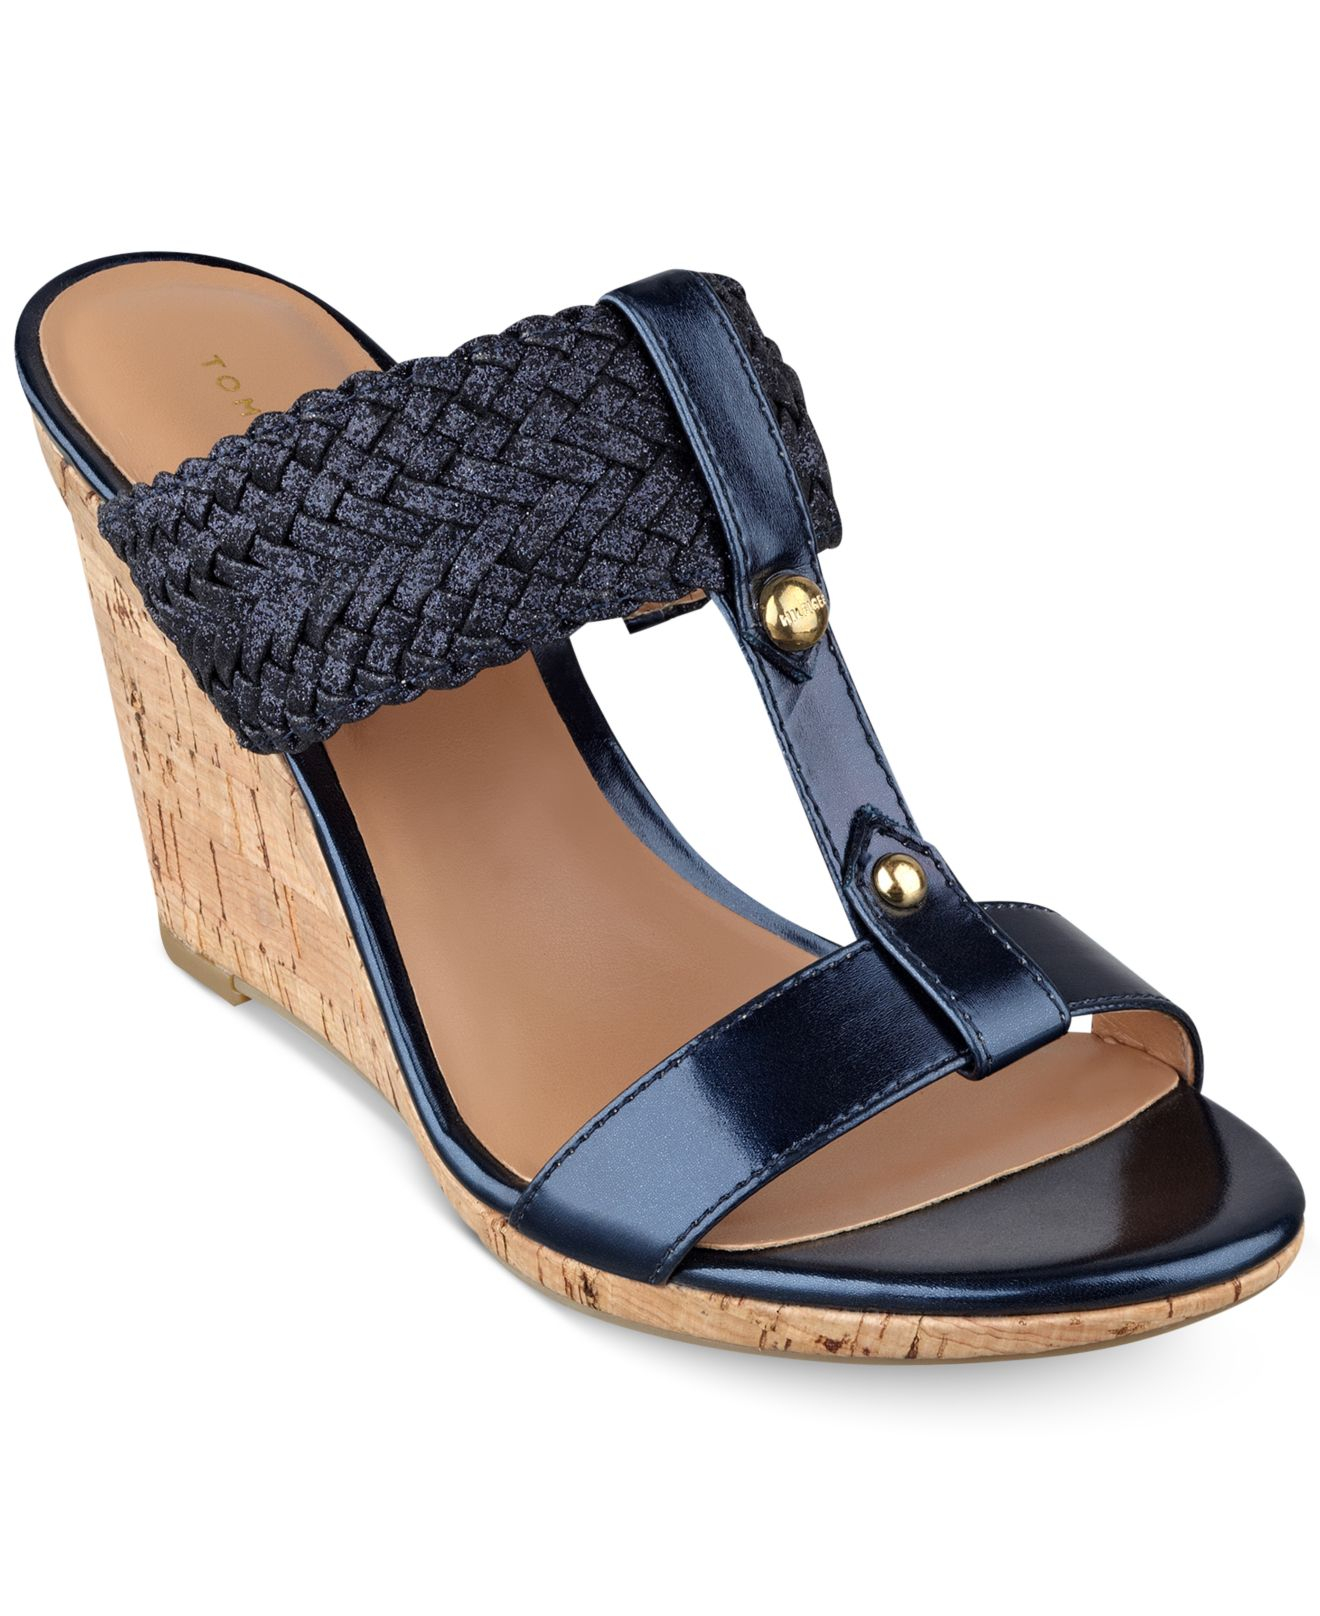 2d2a89046615 Lyst - Tommy Hilfiger Women s Eleona Wedge Sandals in Blue